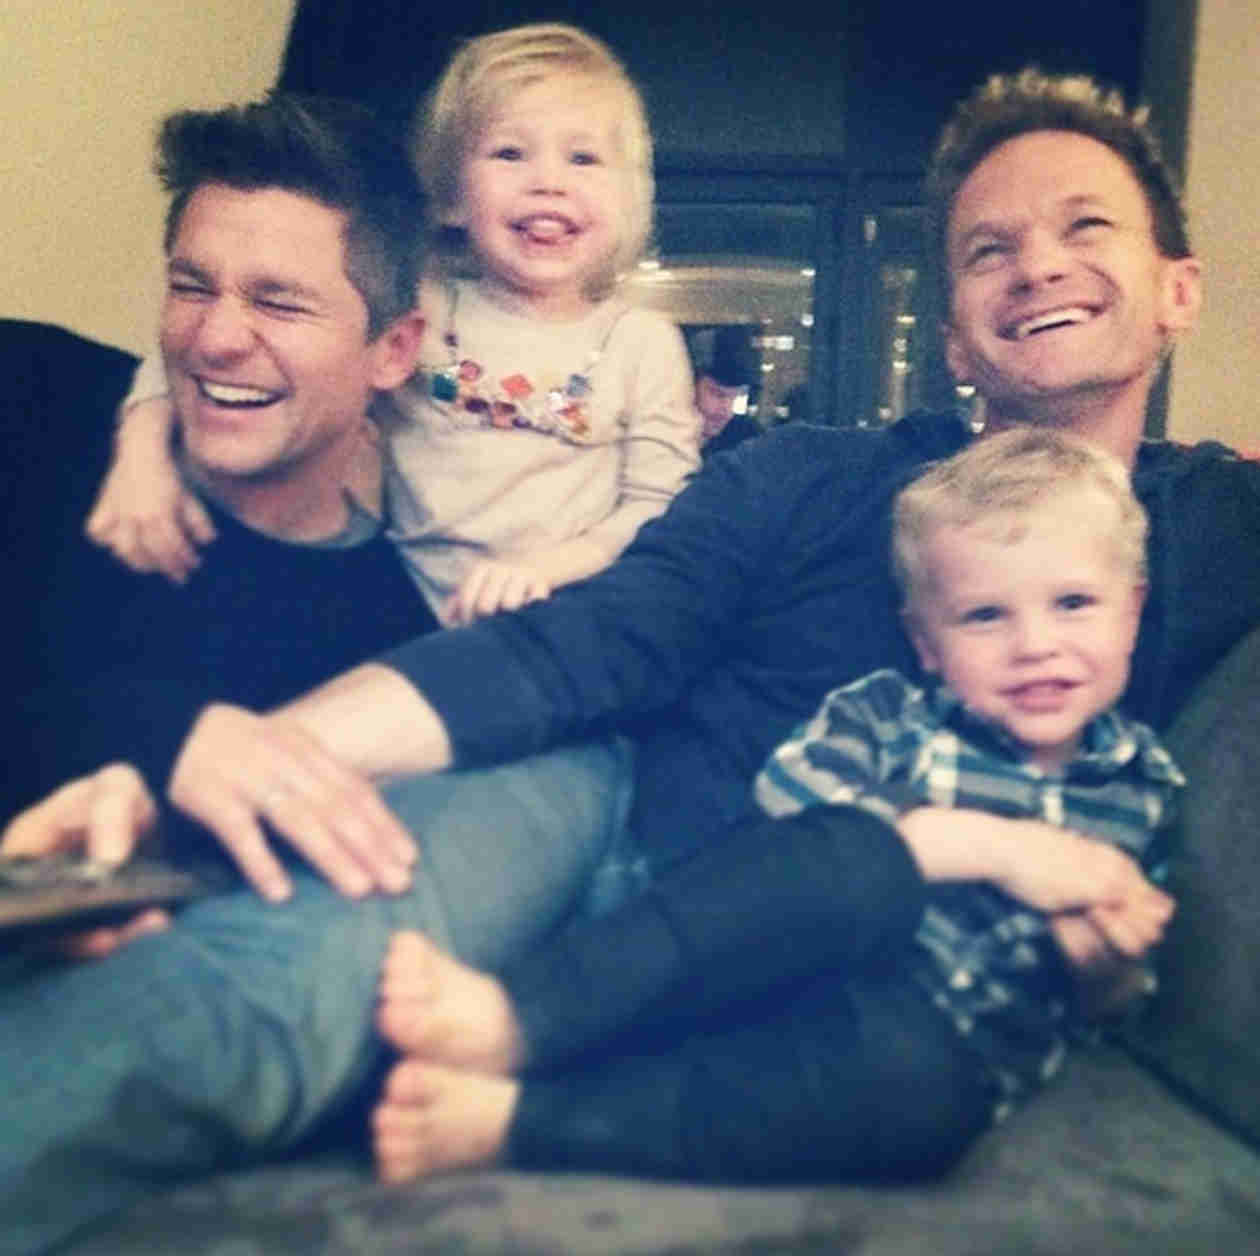 Neil Patrick Harris on Having Kids: It Made Me Re-Fall in Love With David Burtka